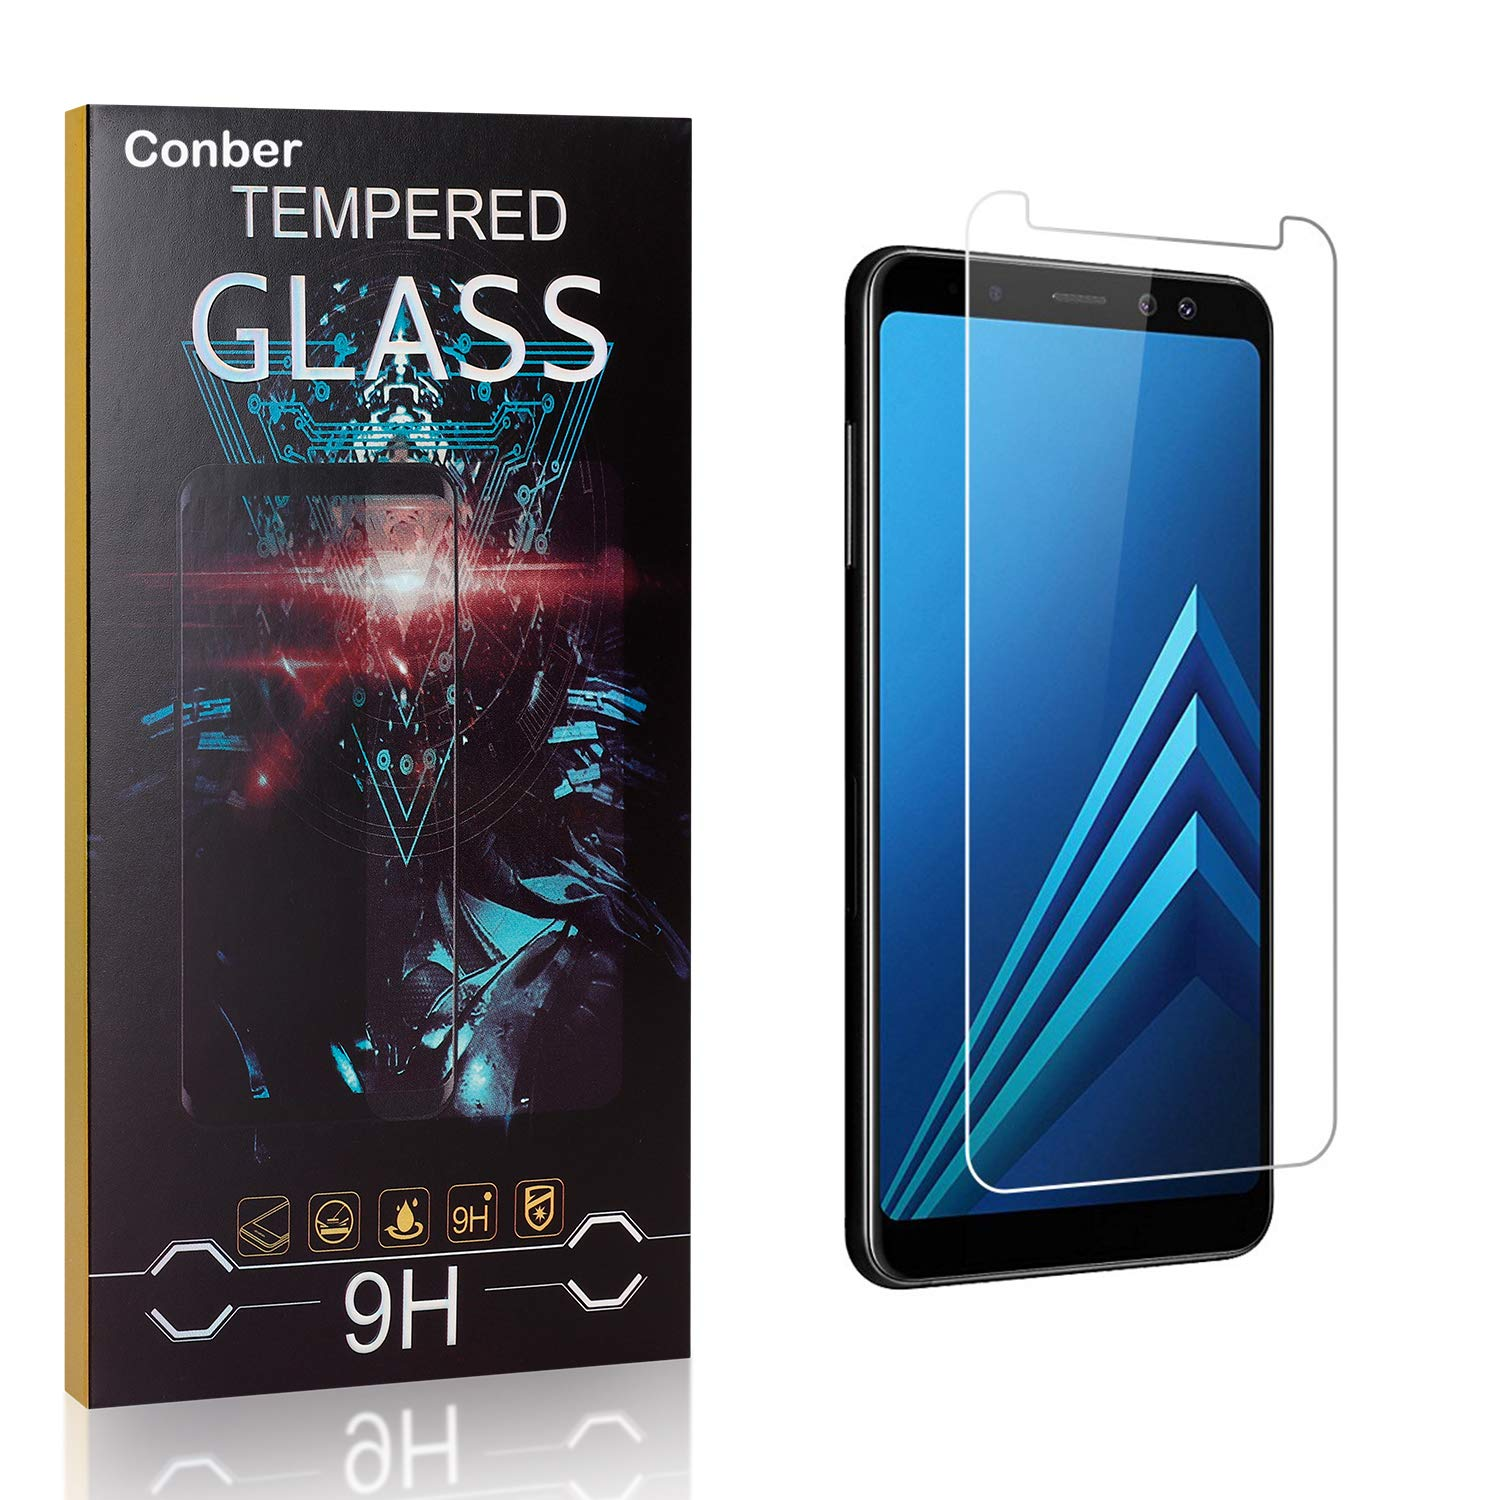 Conber Screen Protector for Quantity limited Samsung Galaxy 3 9H New life A5 2018 Pack